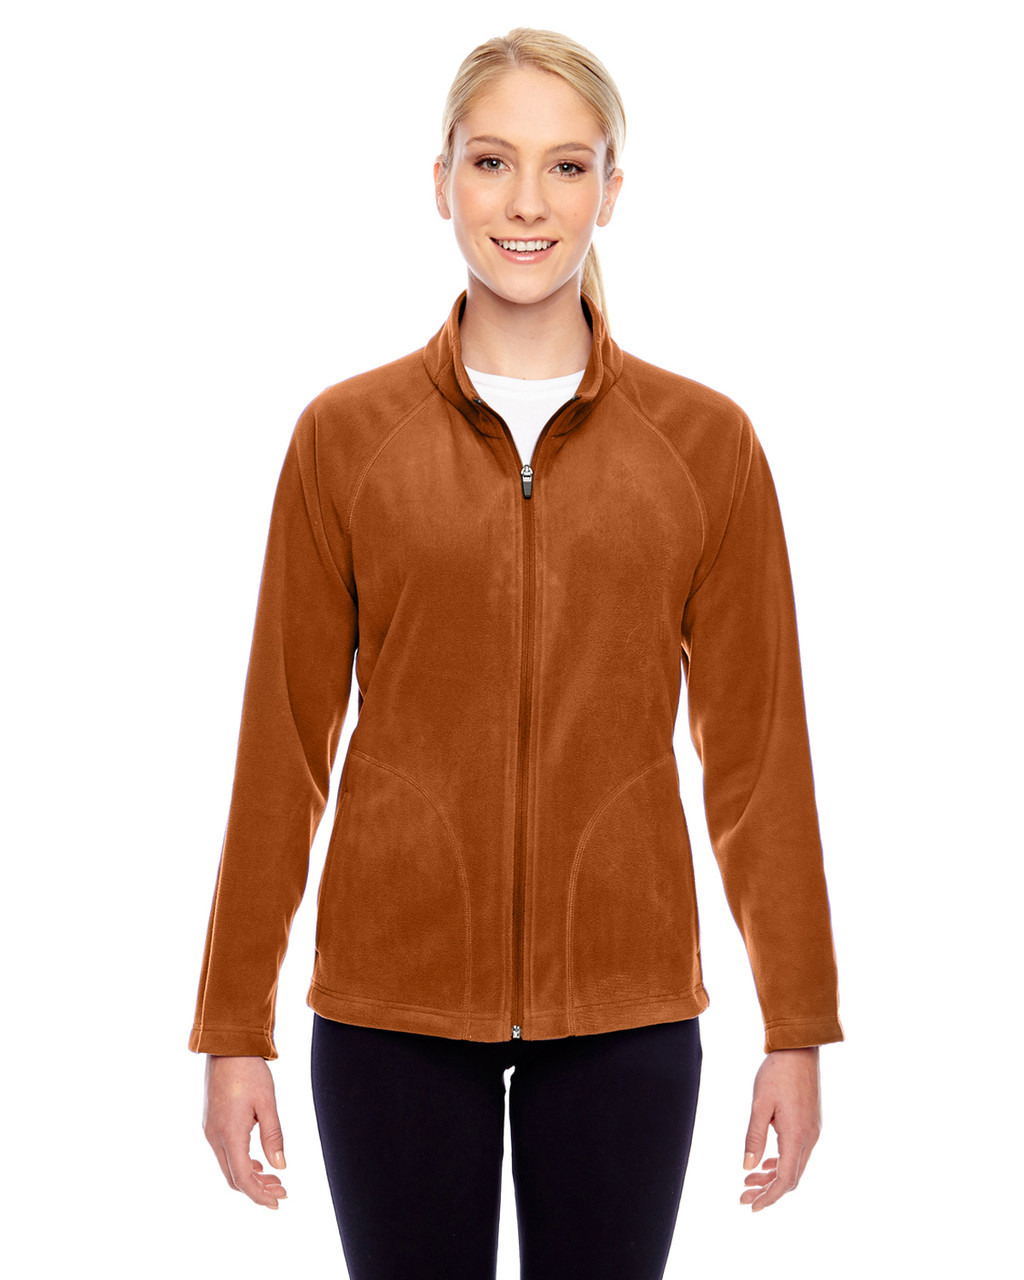 Burnt Orange - TT90W Team 365 Ladies' Campus Microfleece Jacket | BlankClothing.ca